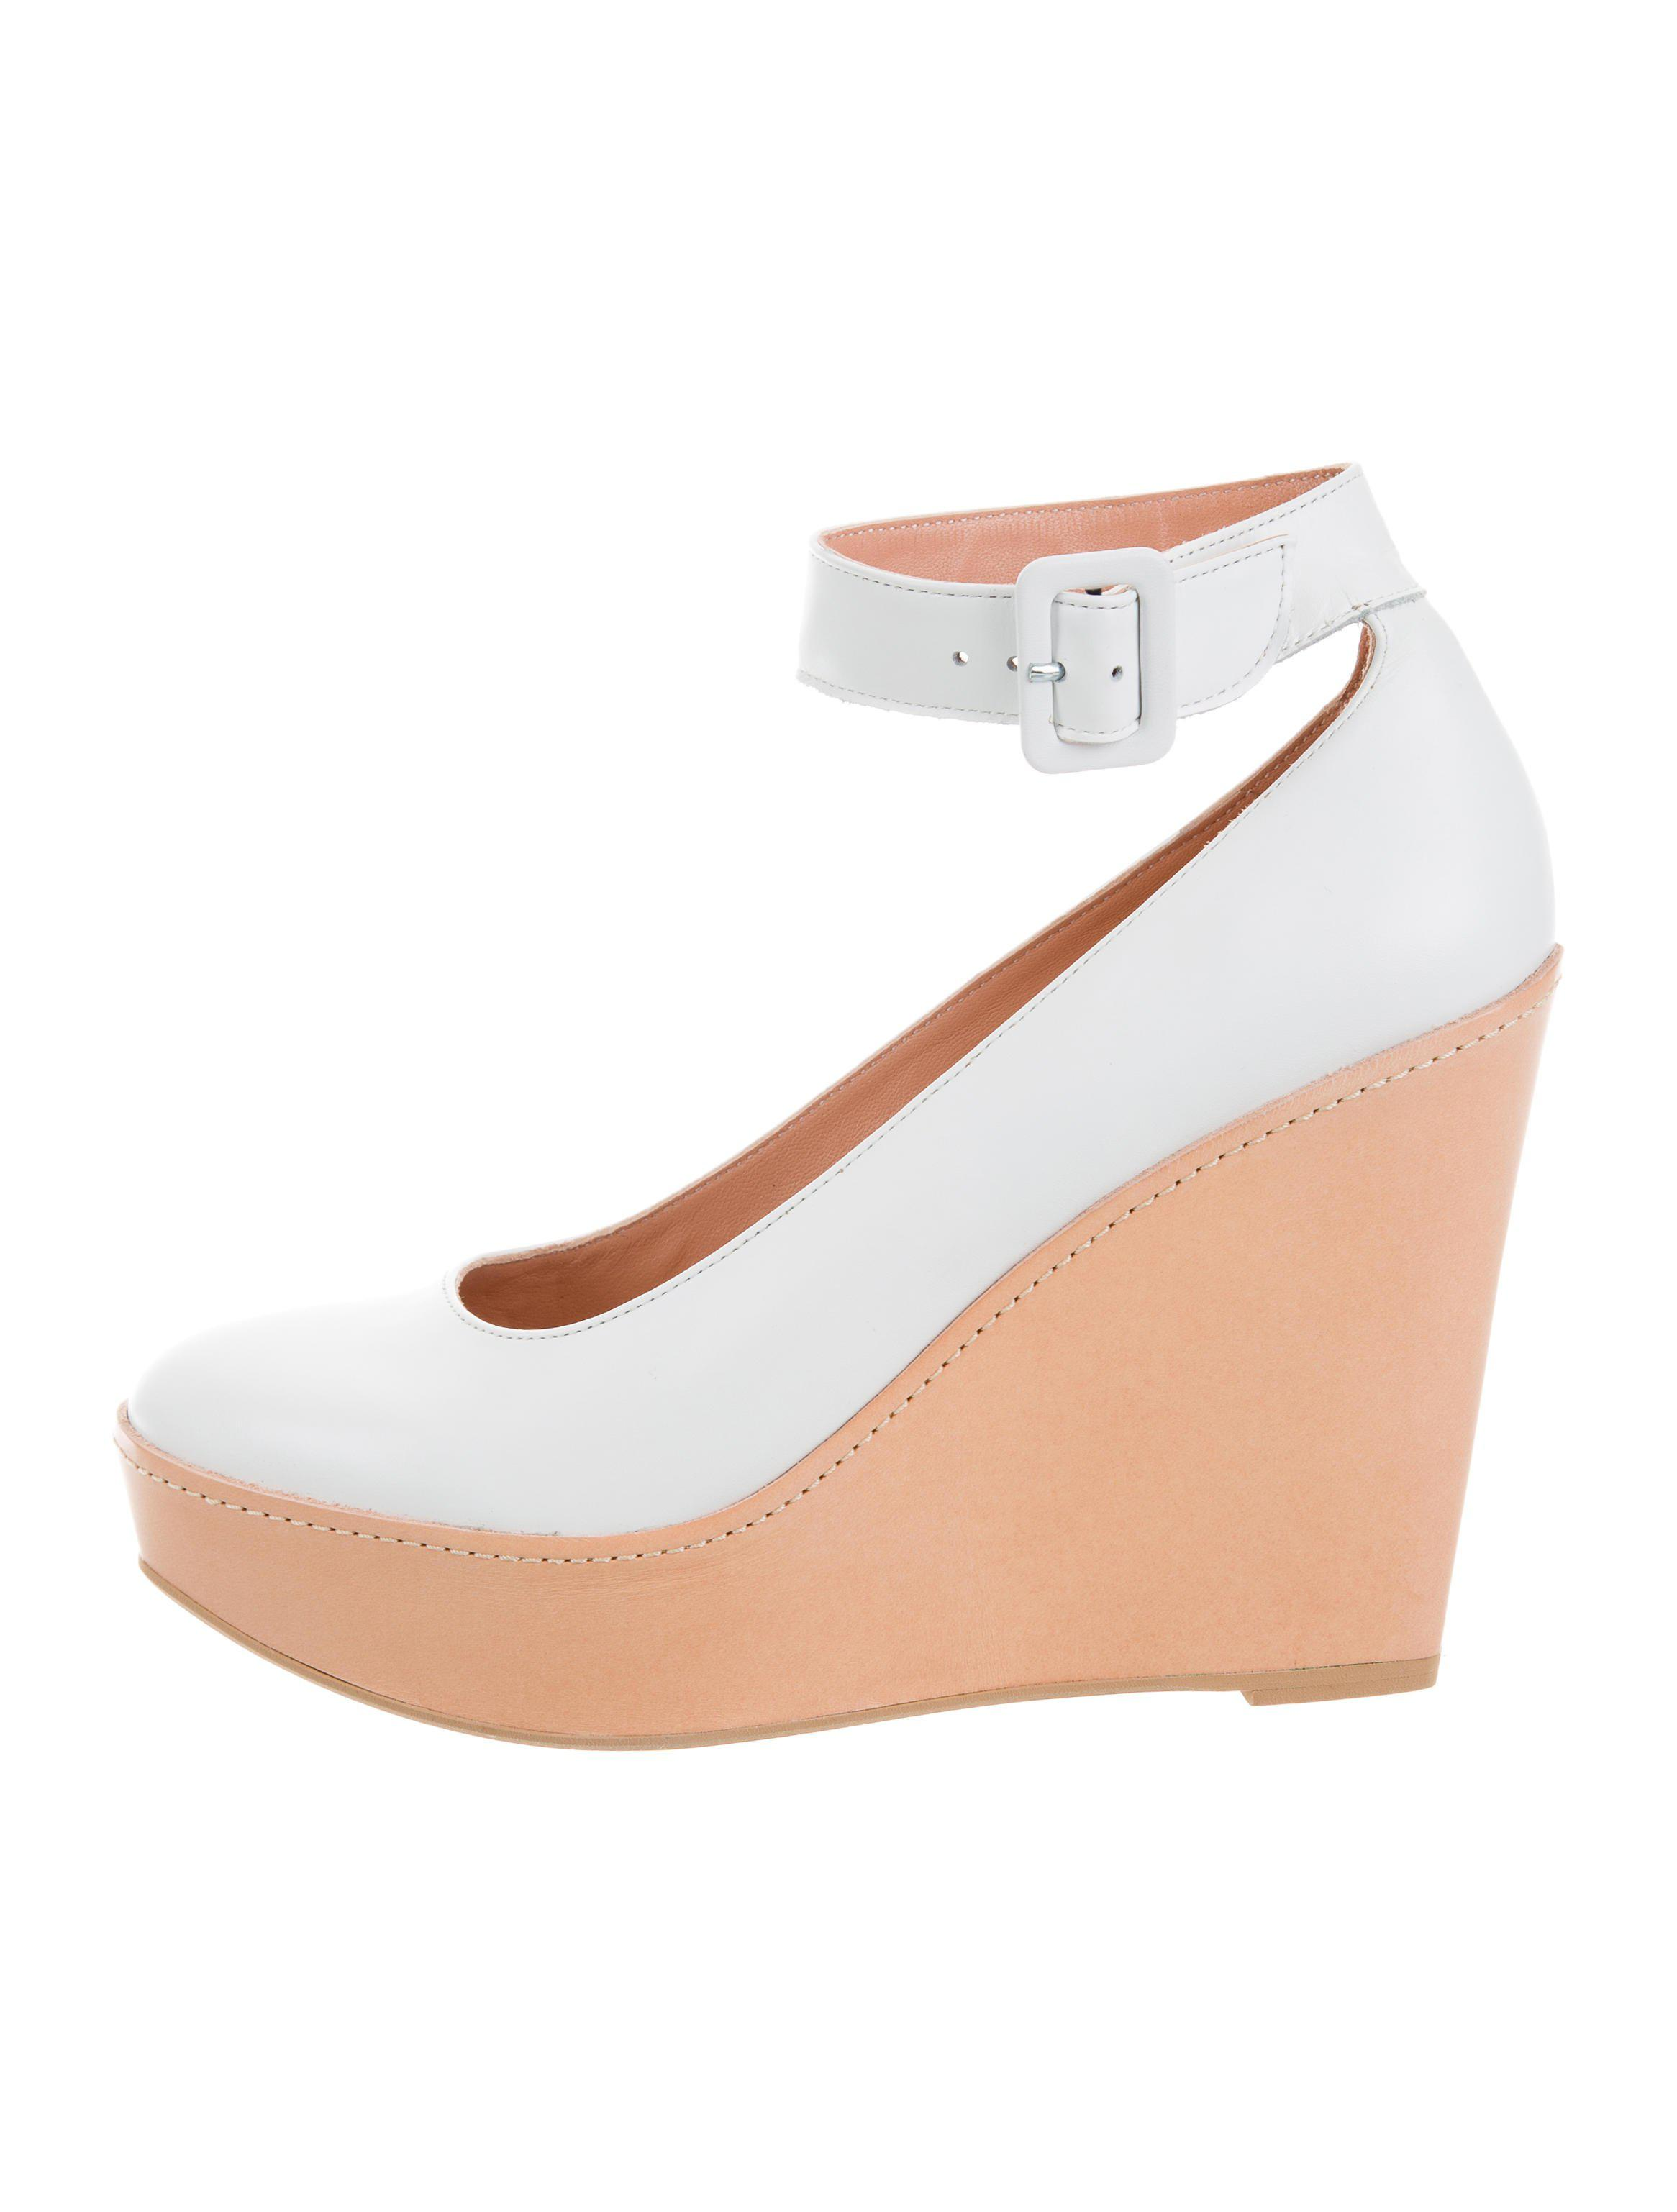 Robert Clergerie Leather Round-Toe Wedges w/ Tags cheap pay with visa w7GWLUn0